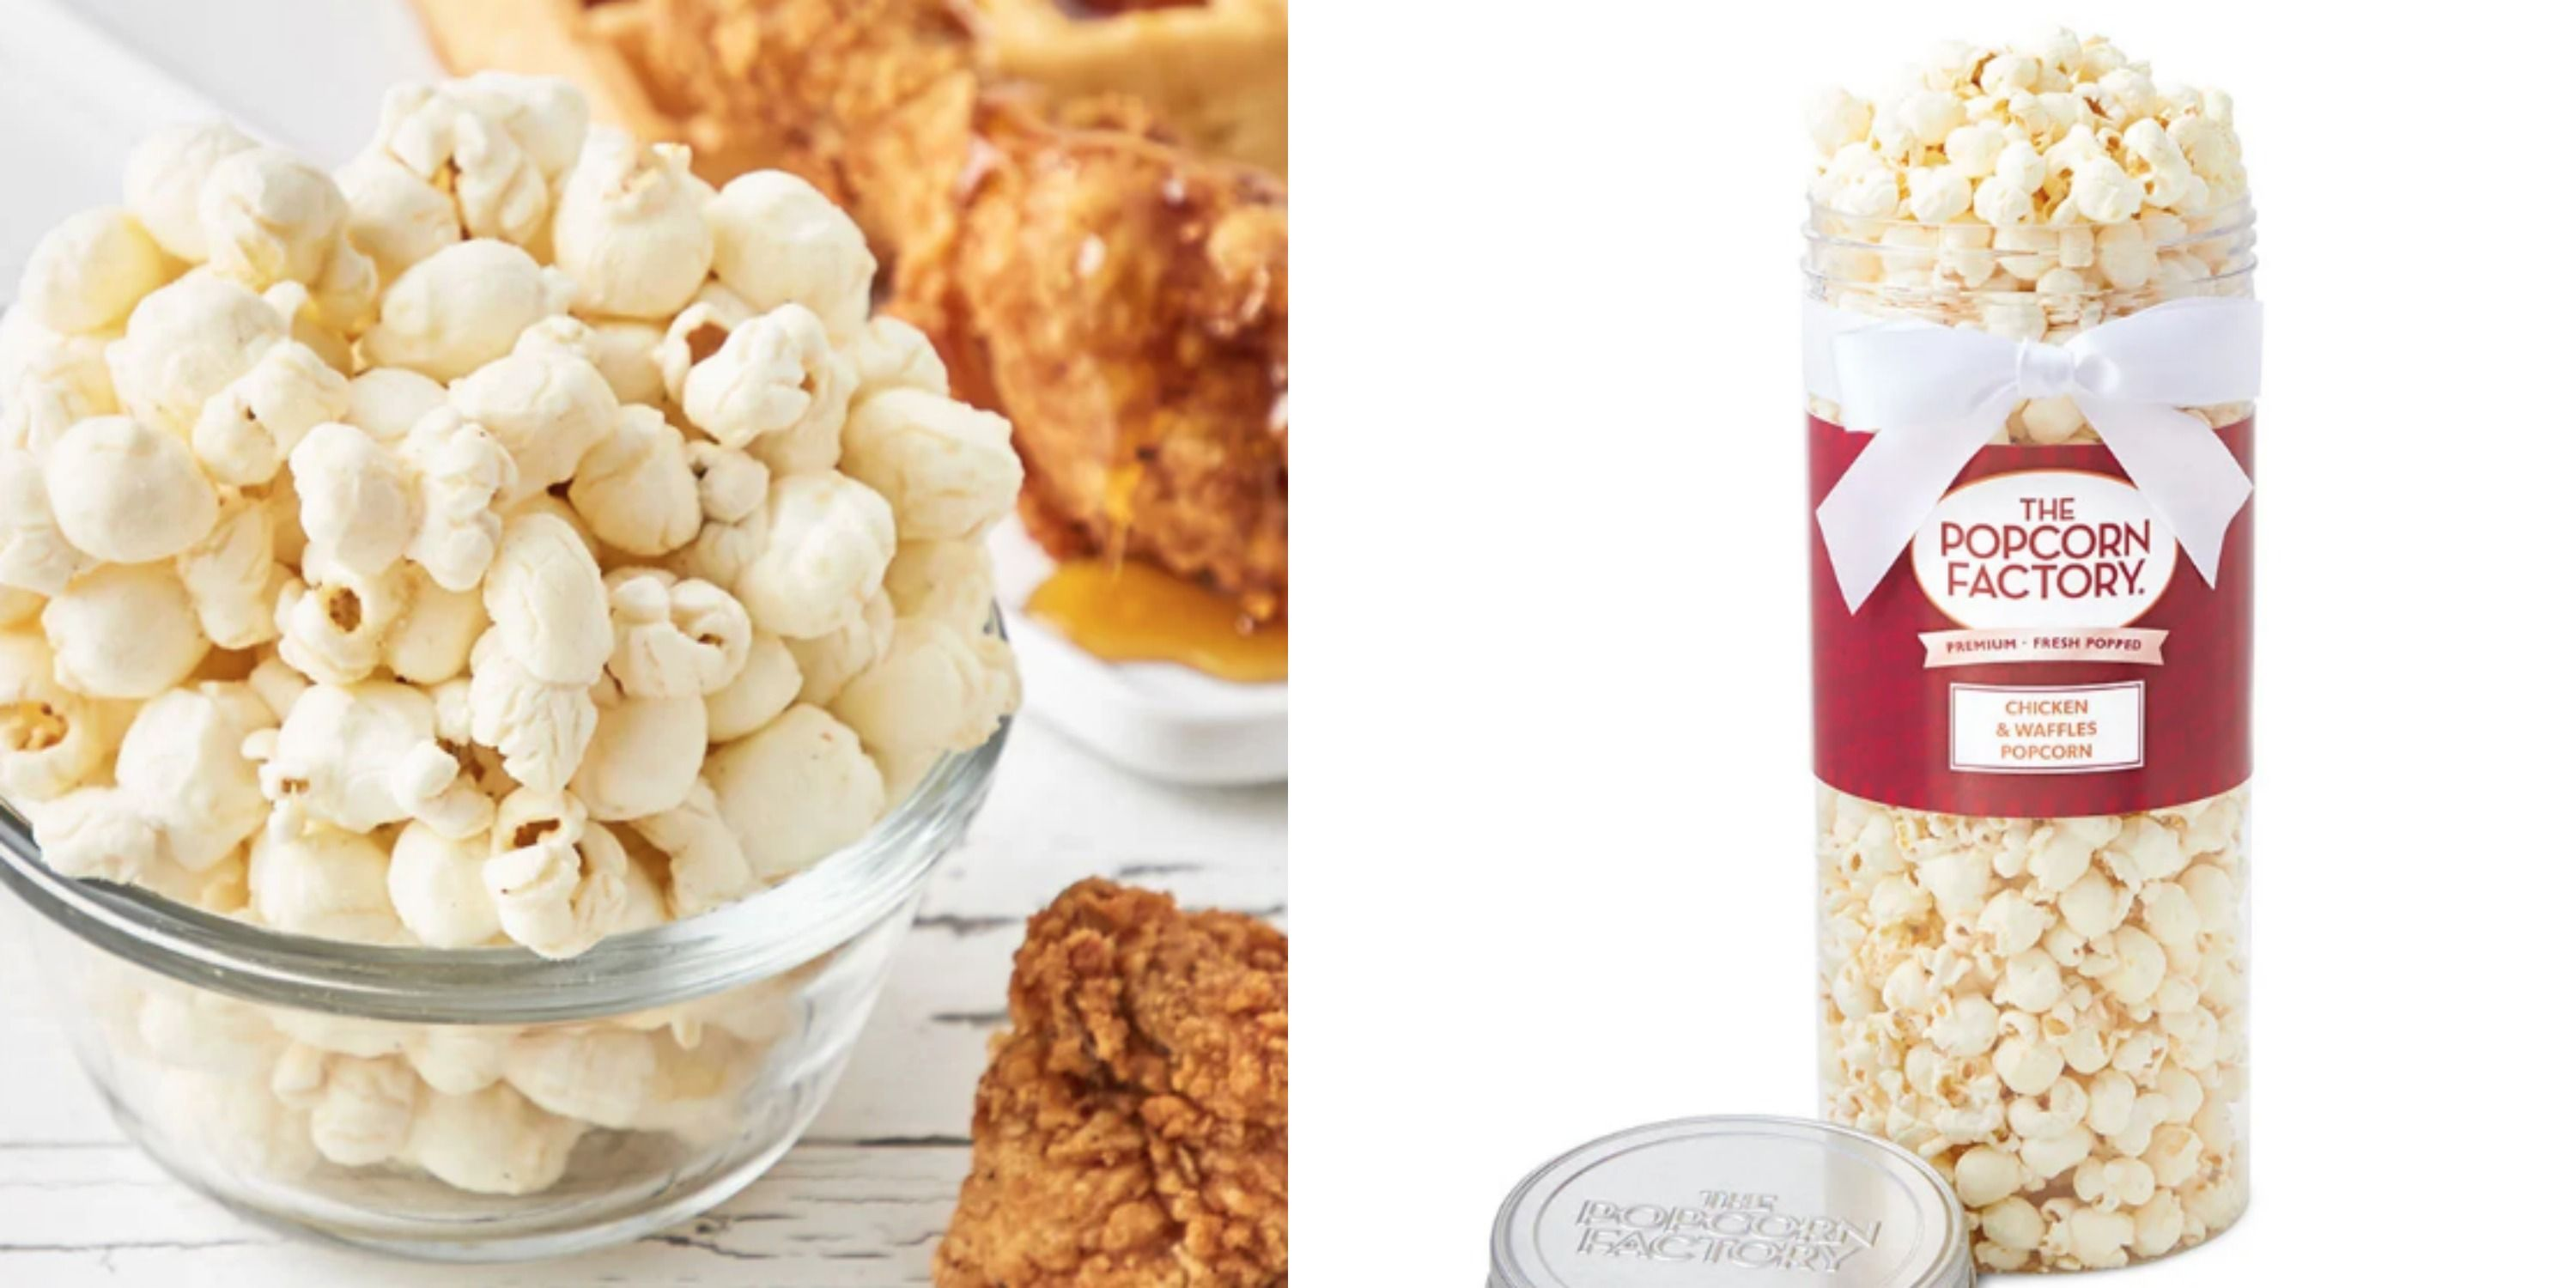 The Popcorn Factory's Launched A Savory Chicken And Waffles Popcorn